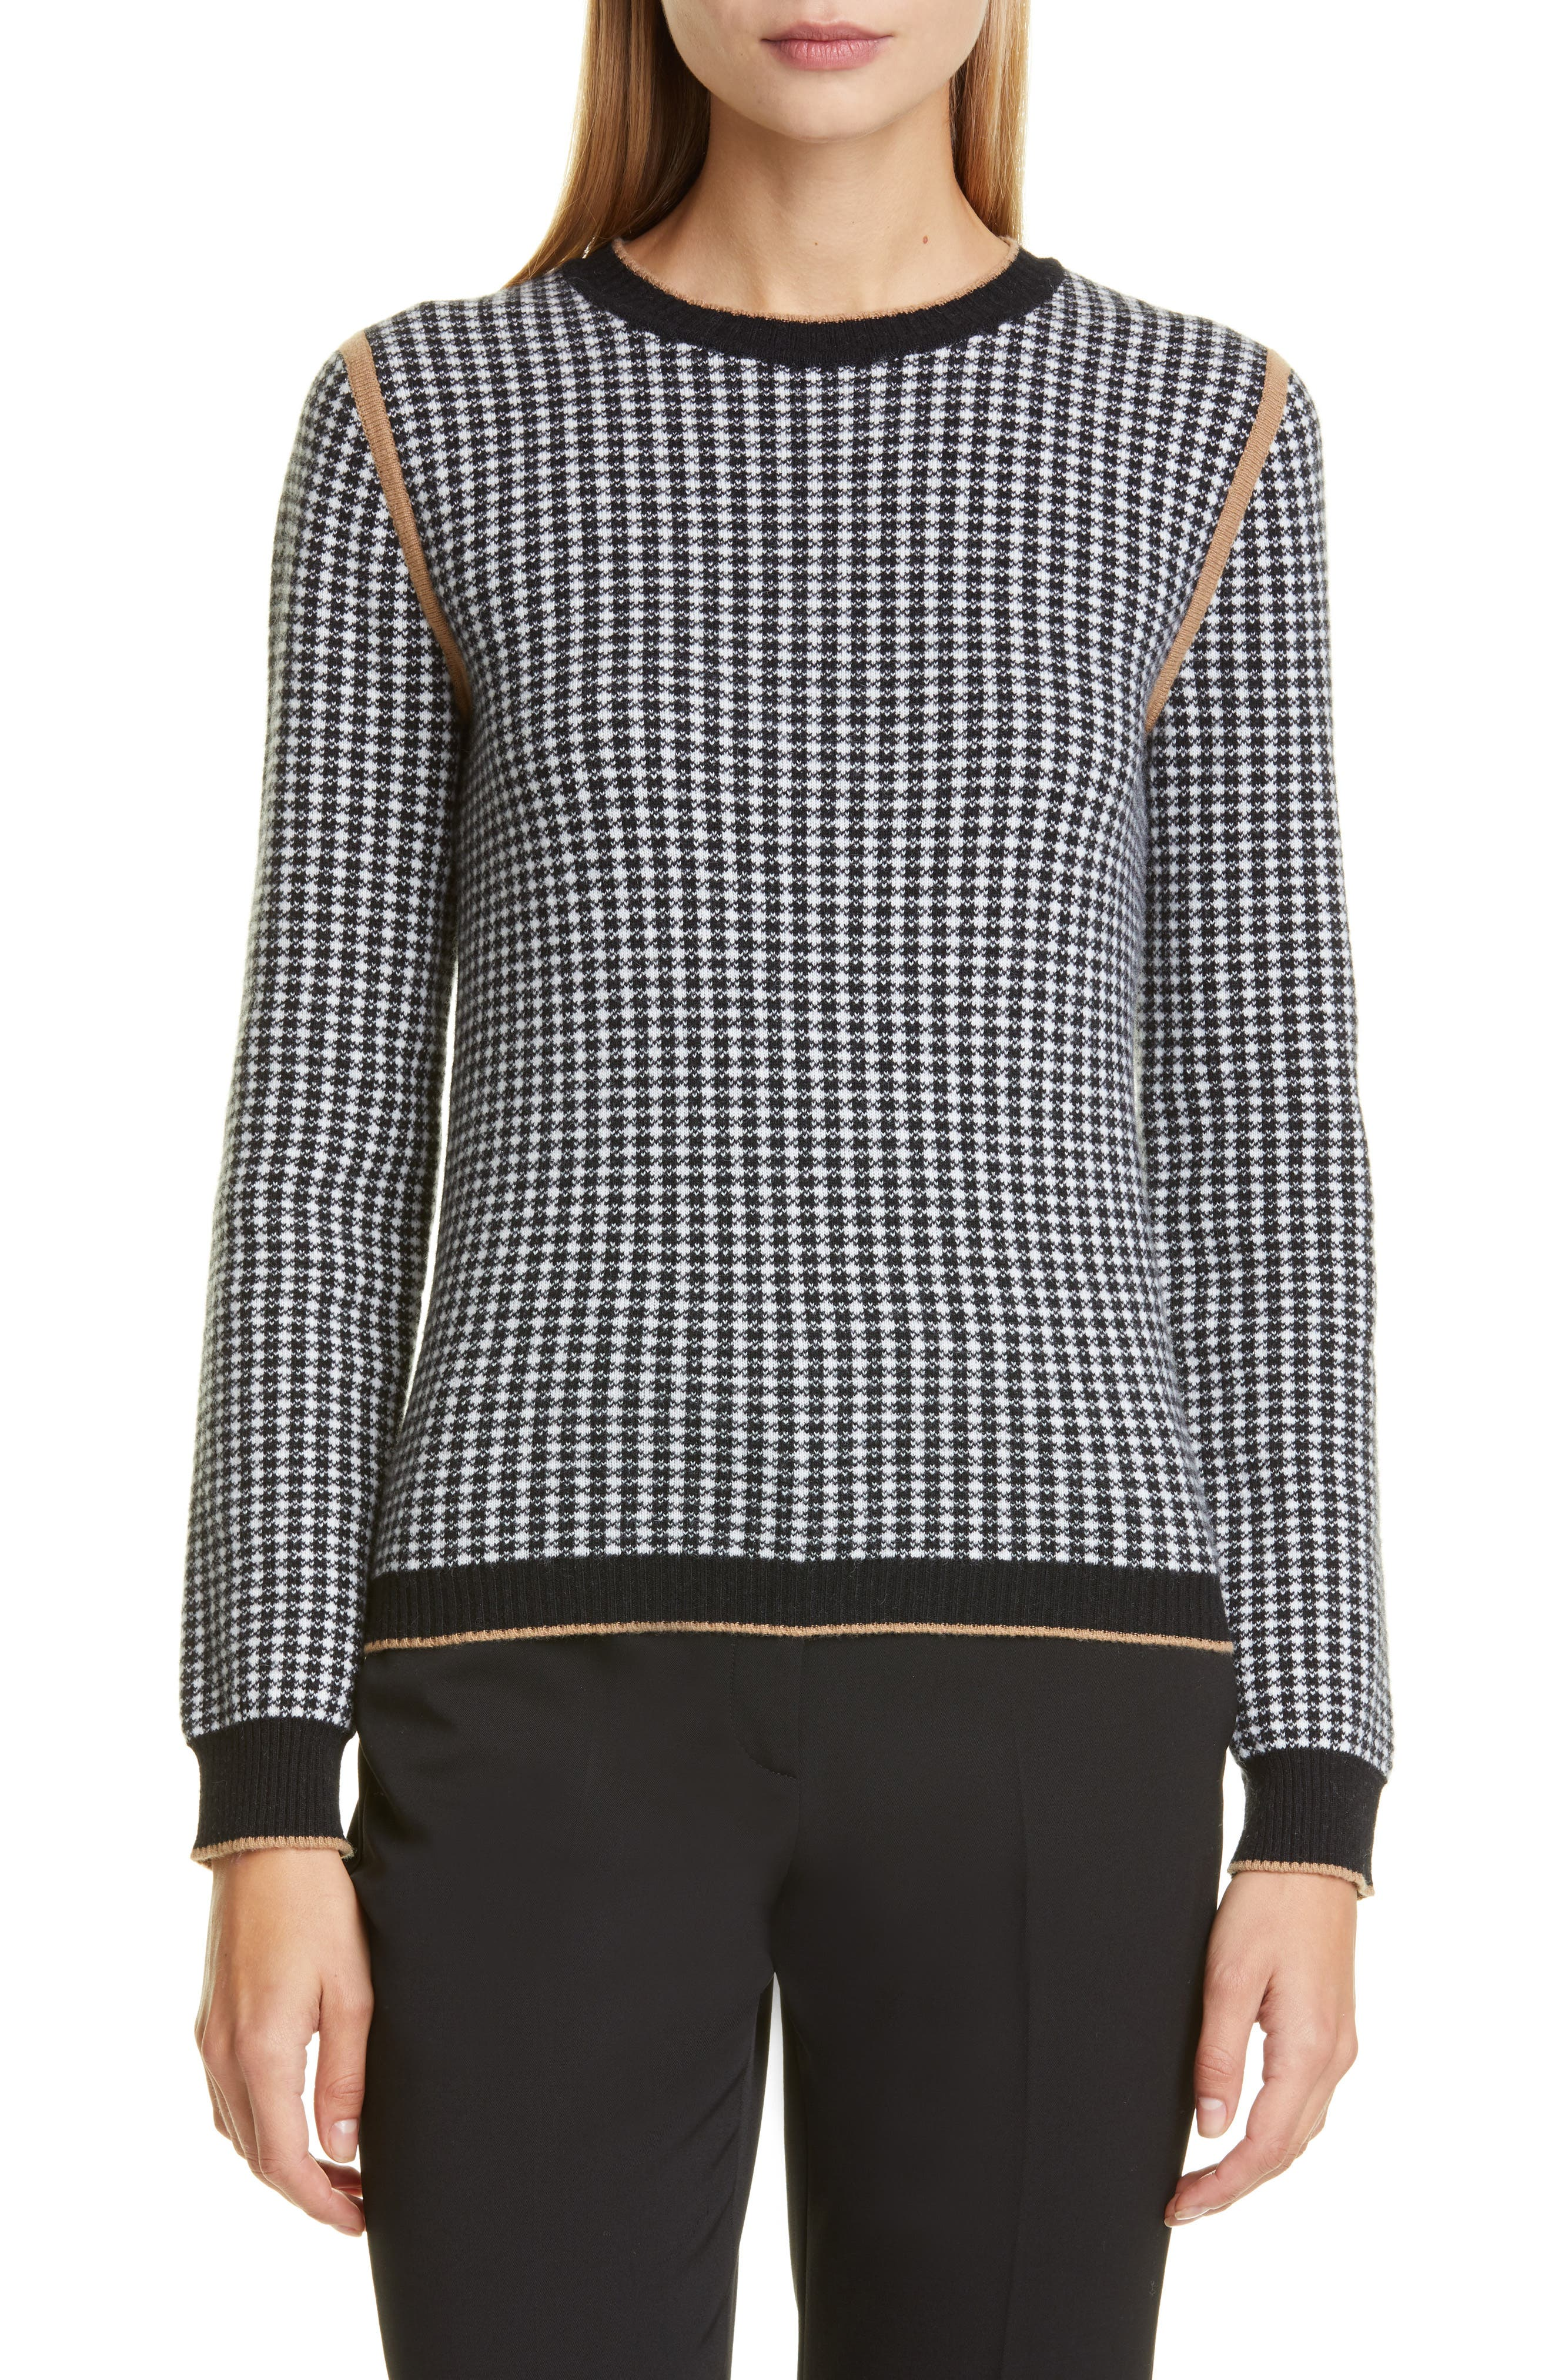 Max Mara Tops Colle Houndstooth Jacquard Wool & Cashmere Pullover